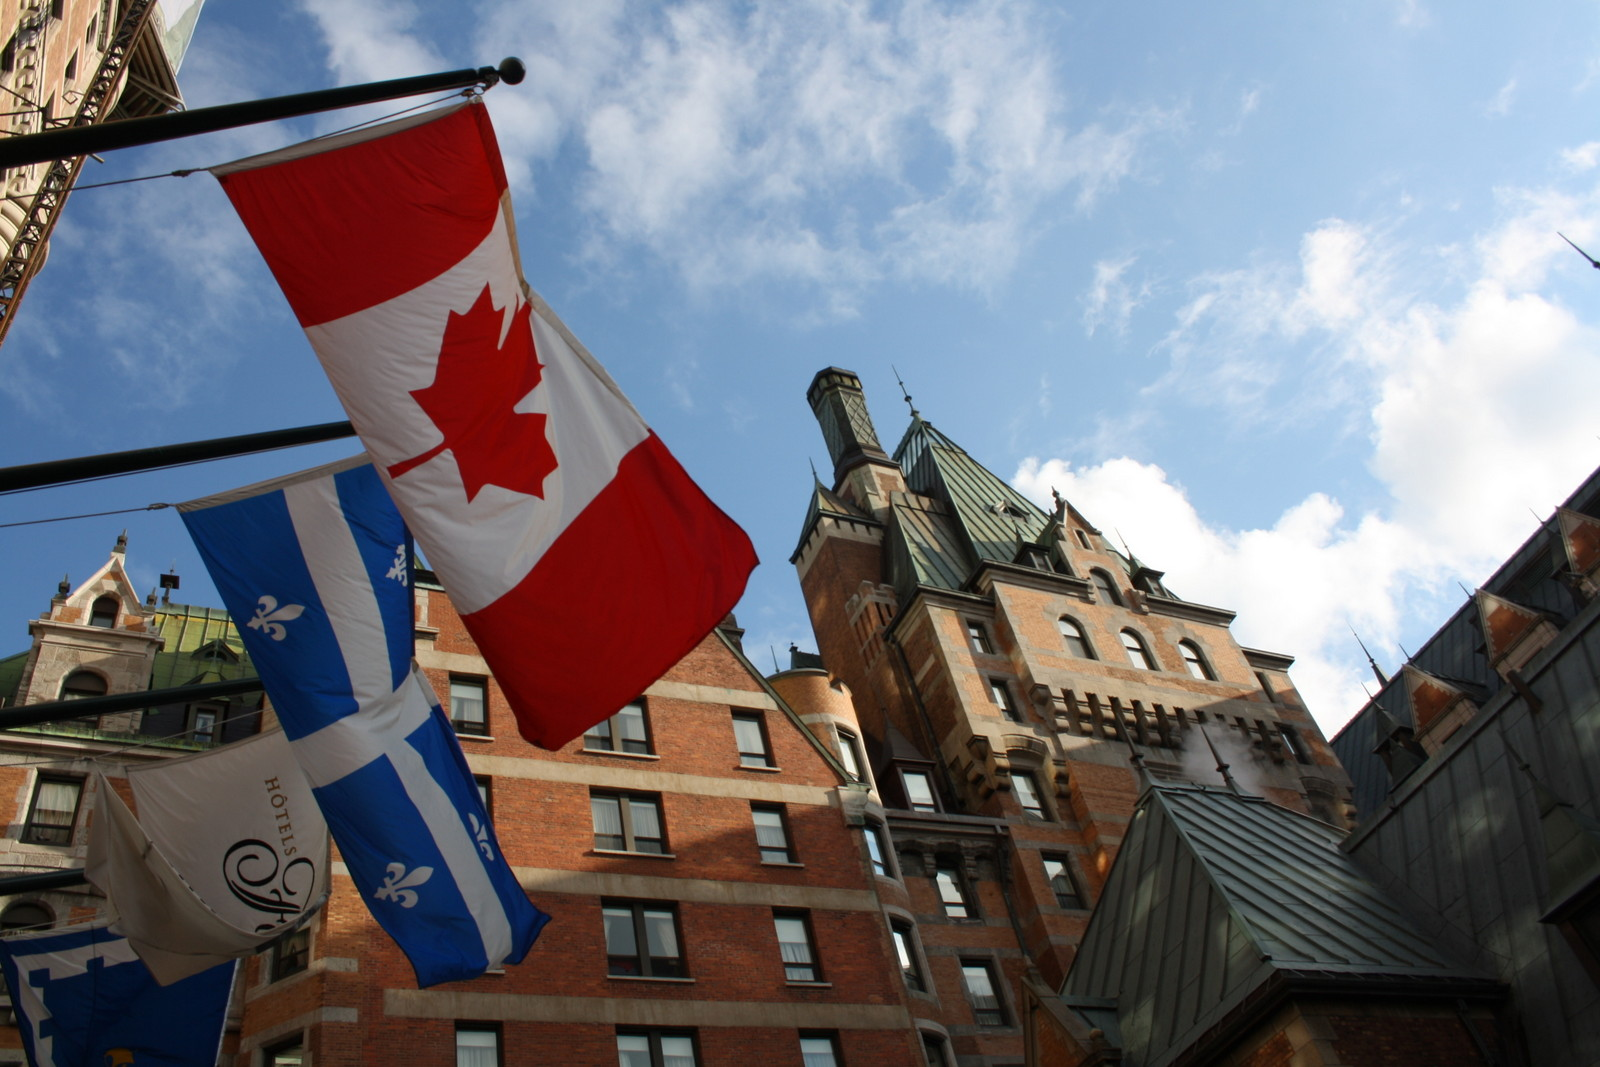 You'll see both the Quebec and Canadian flags at the Fairmont Chateau Frontenac in Quebec City. JIM BYERS PHOTO